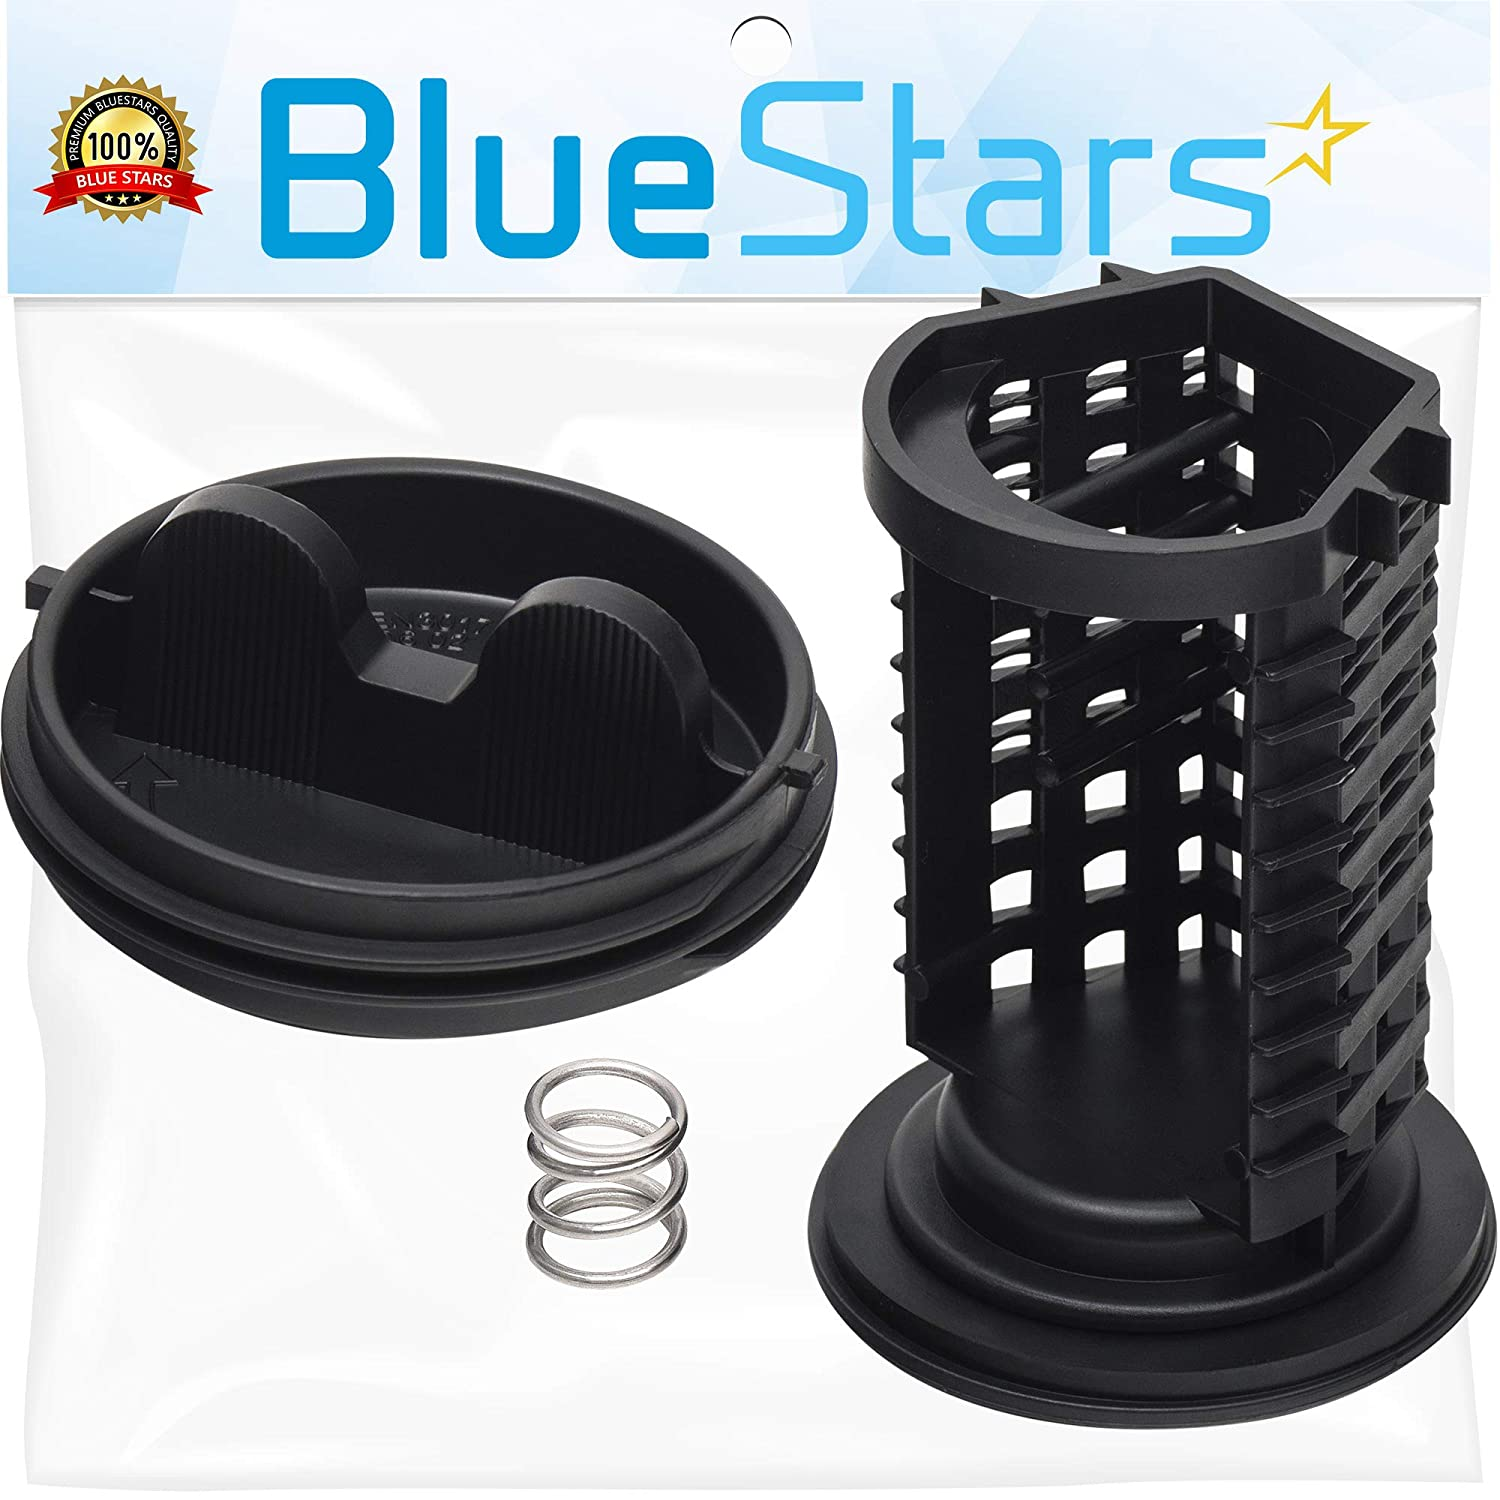 Ultra Durable 383EER2001A Washer Drain Pump Filter/Trap Replacement Part by Blue Stars - Exact Fit for LG Washers - Replaces PS3522306 AP4440367 383EER2001F